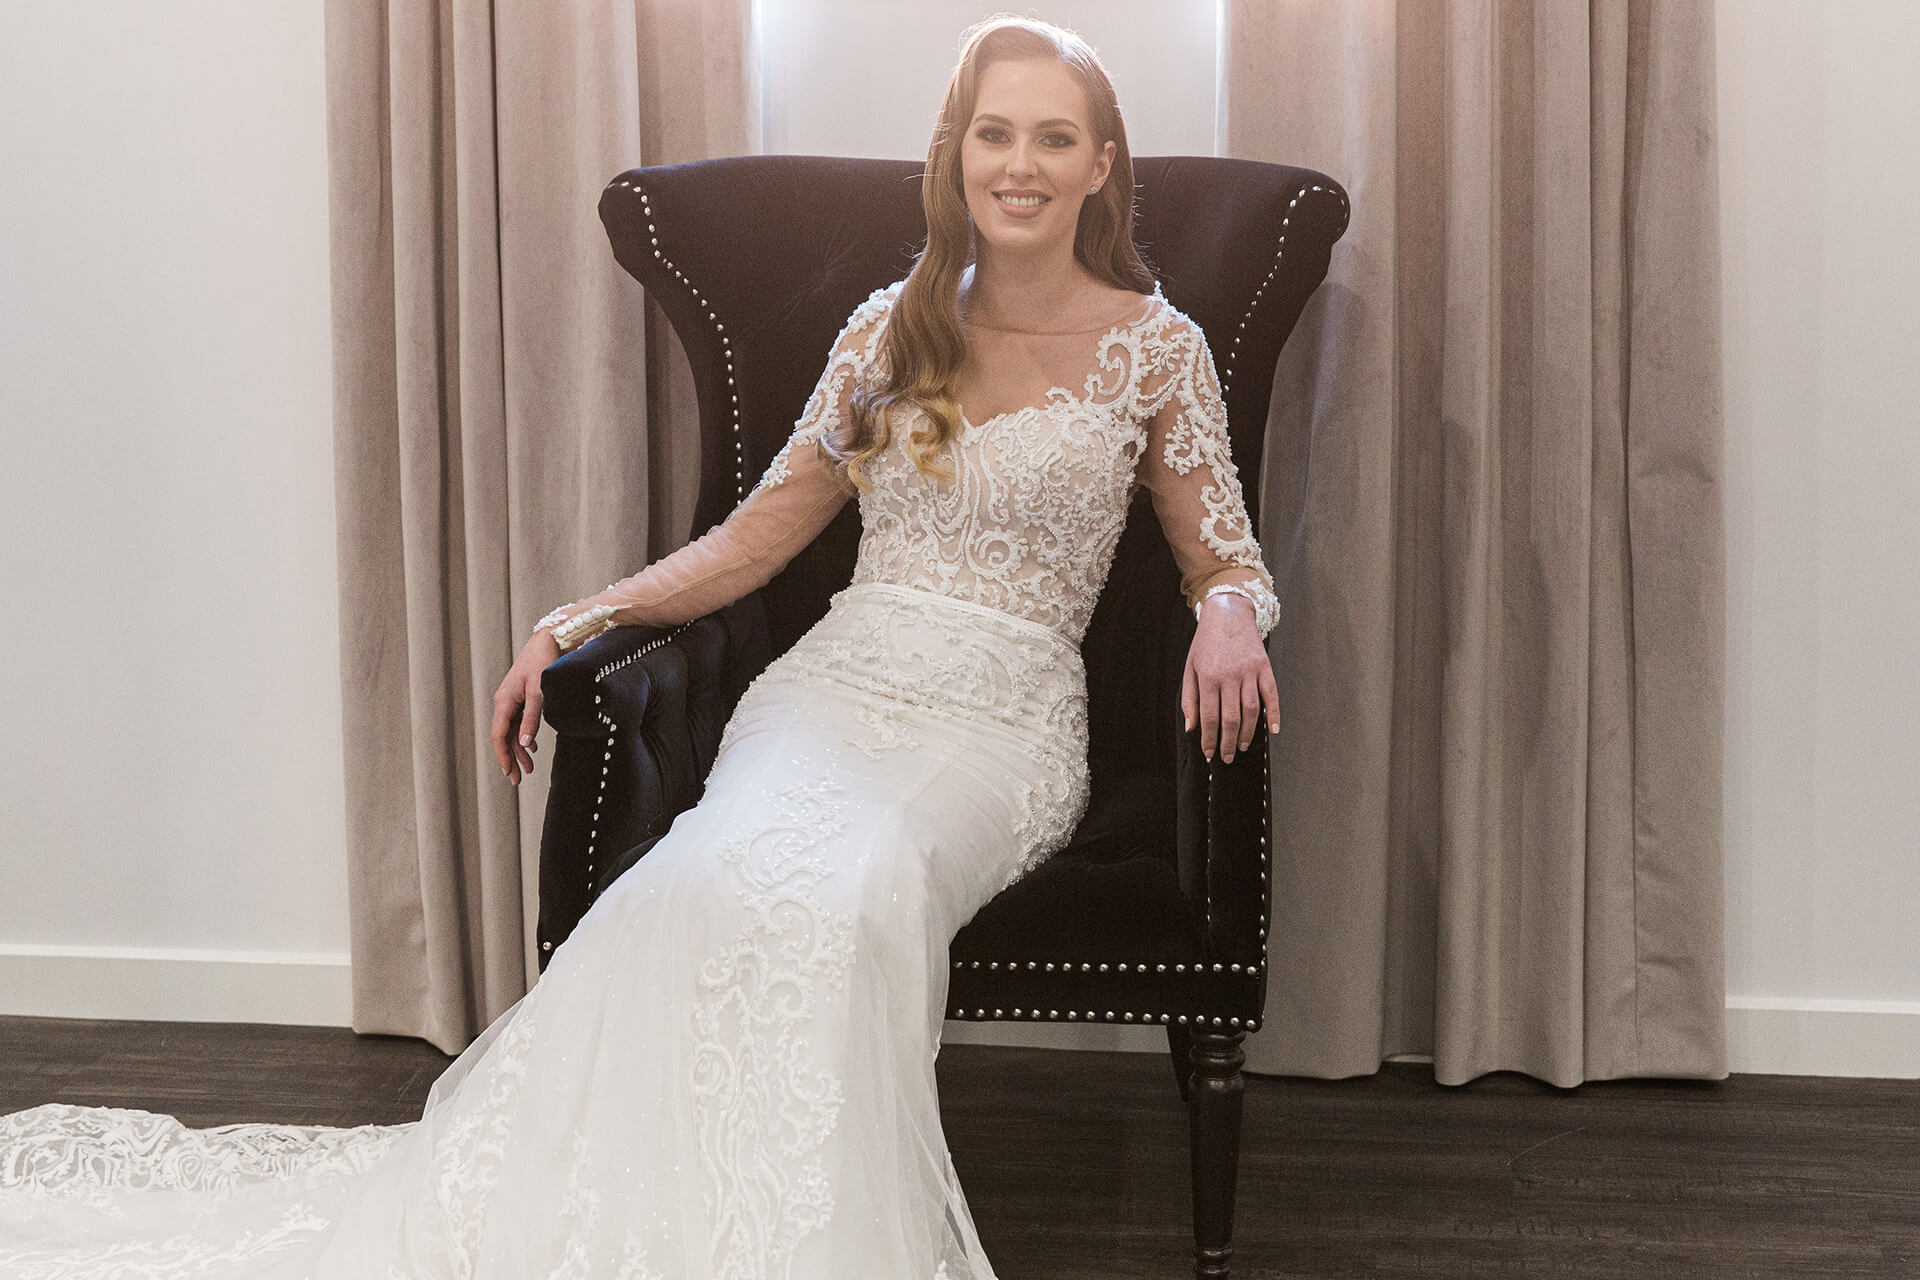 A smiling woman sitting down in a wedding dress